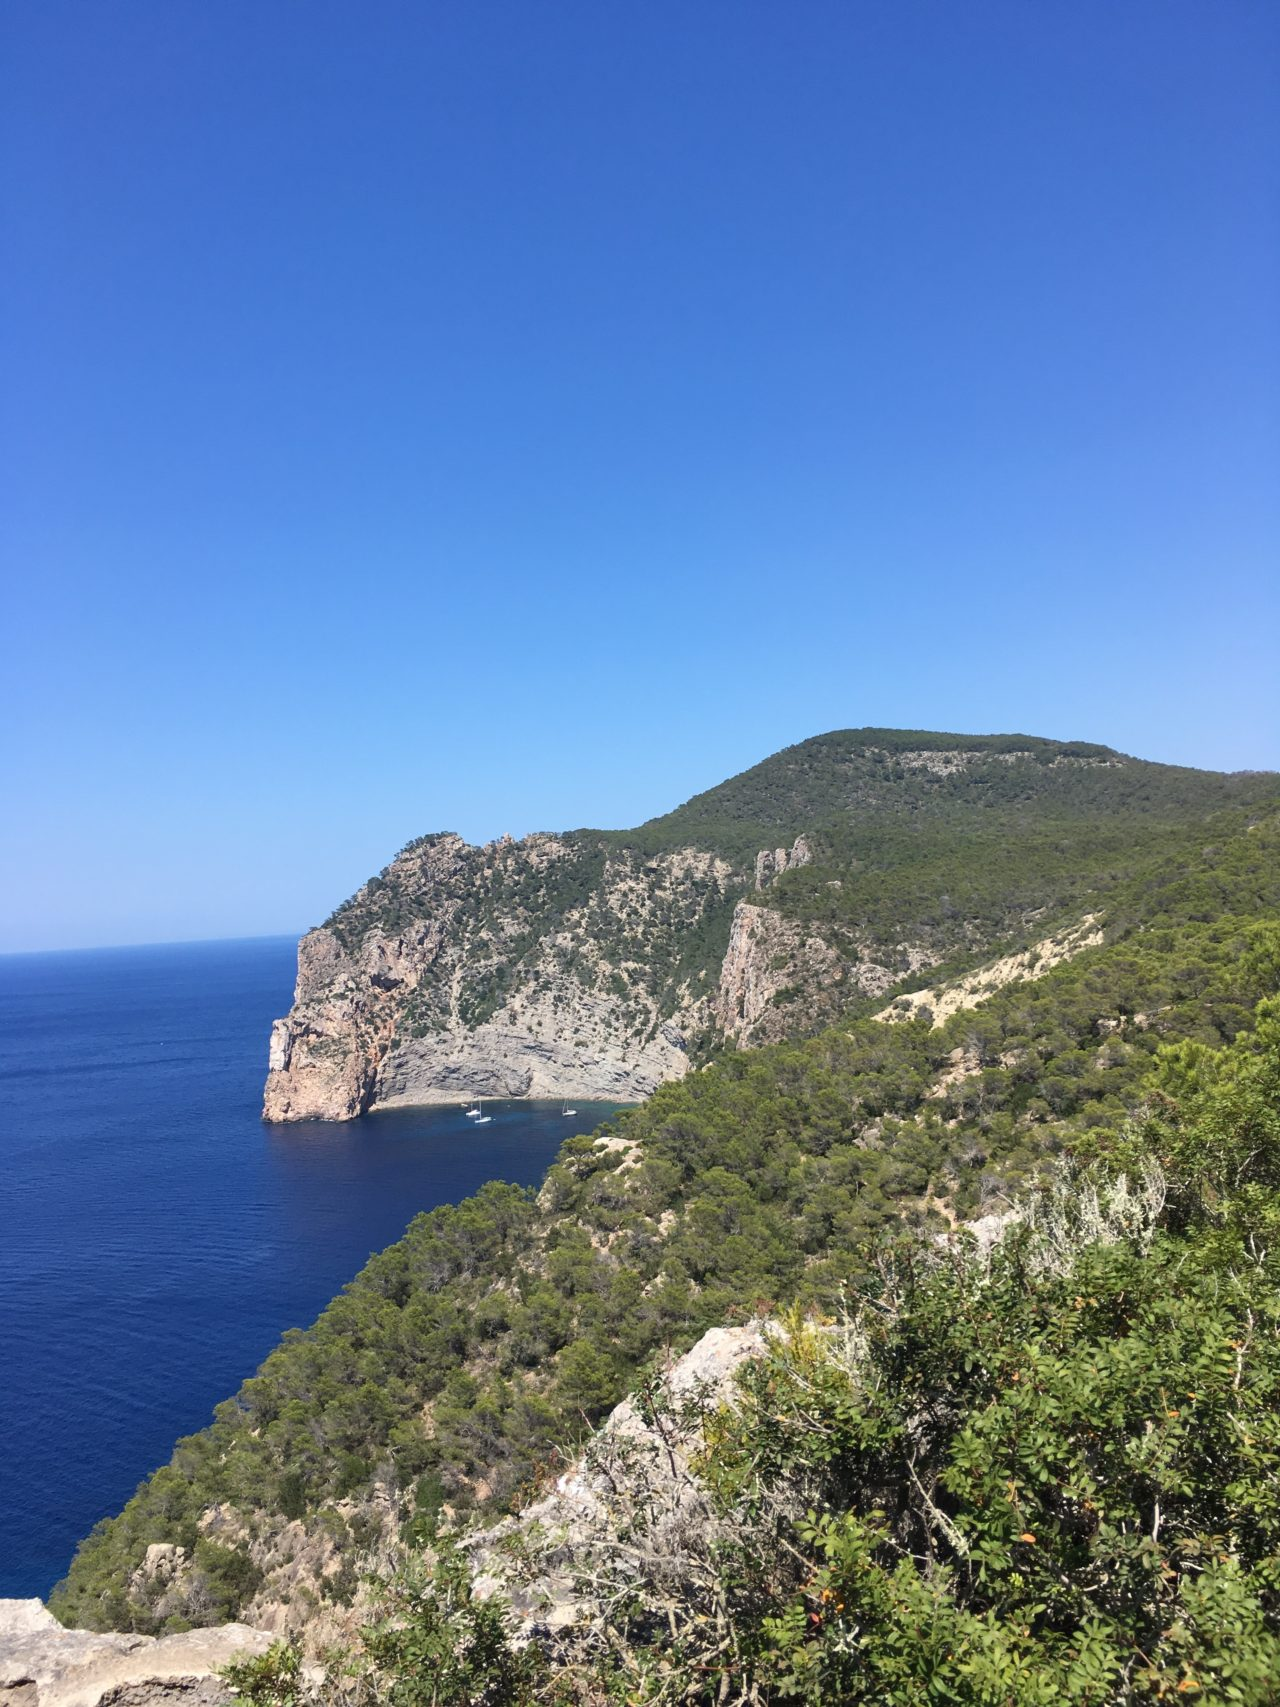 Mountain View Of Coastal Cove With Blue Sky